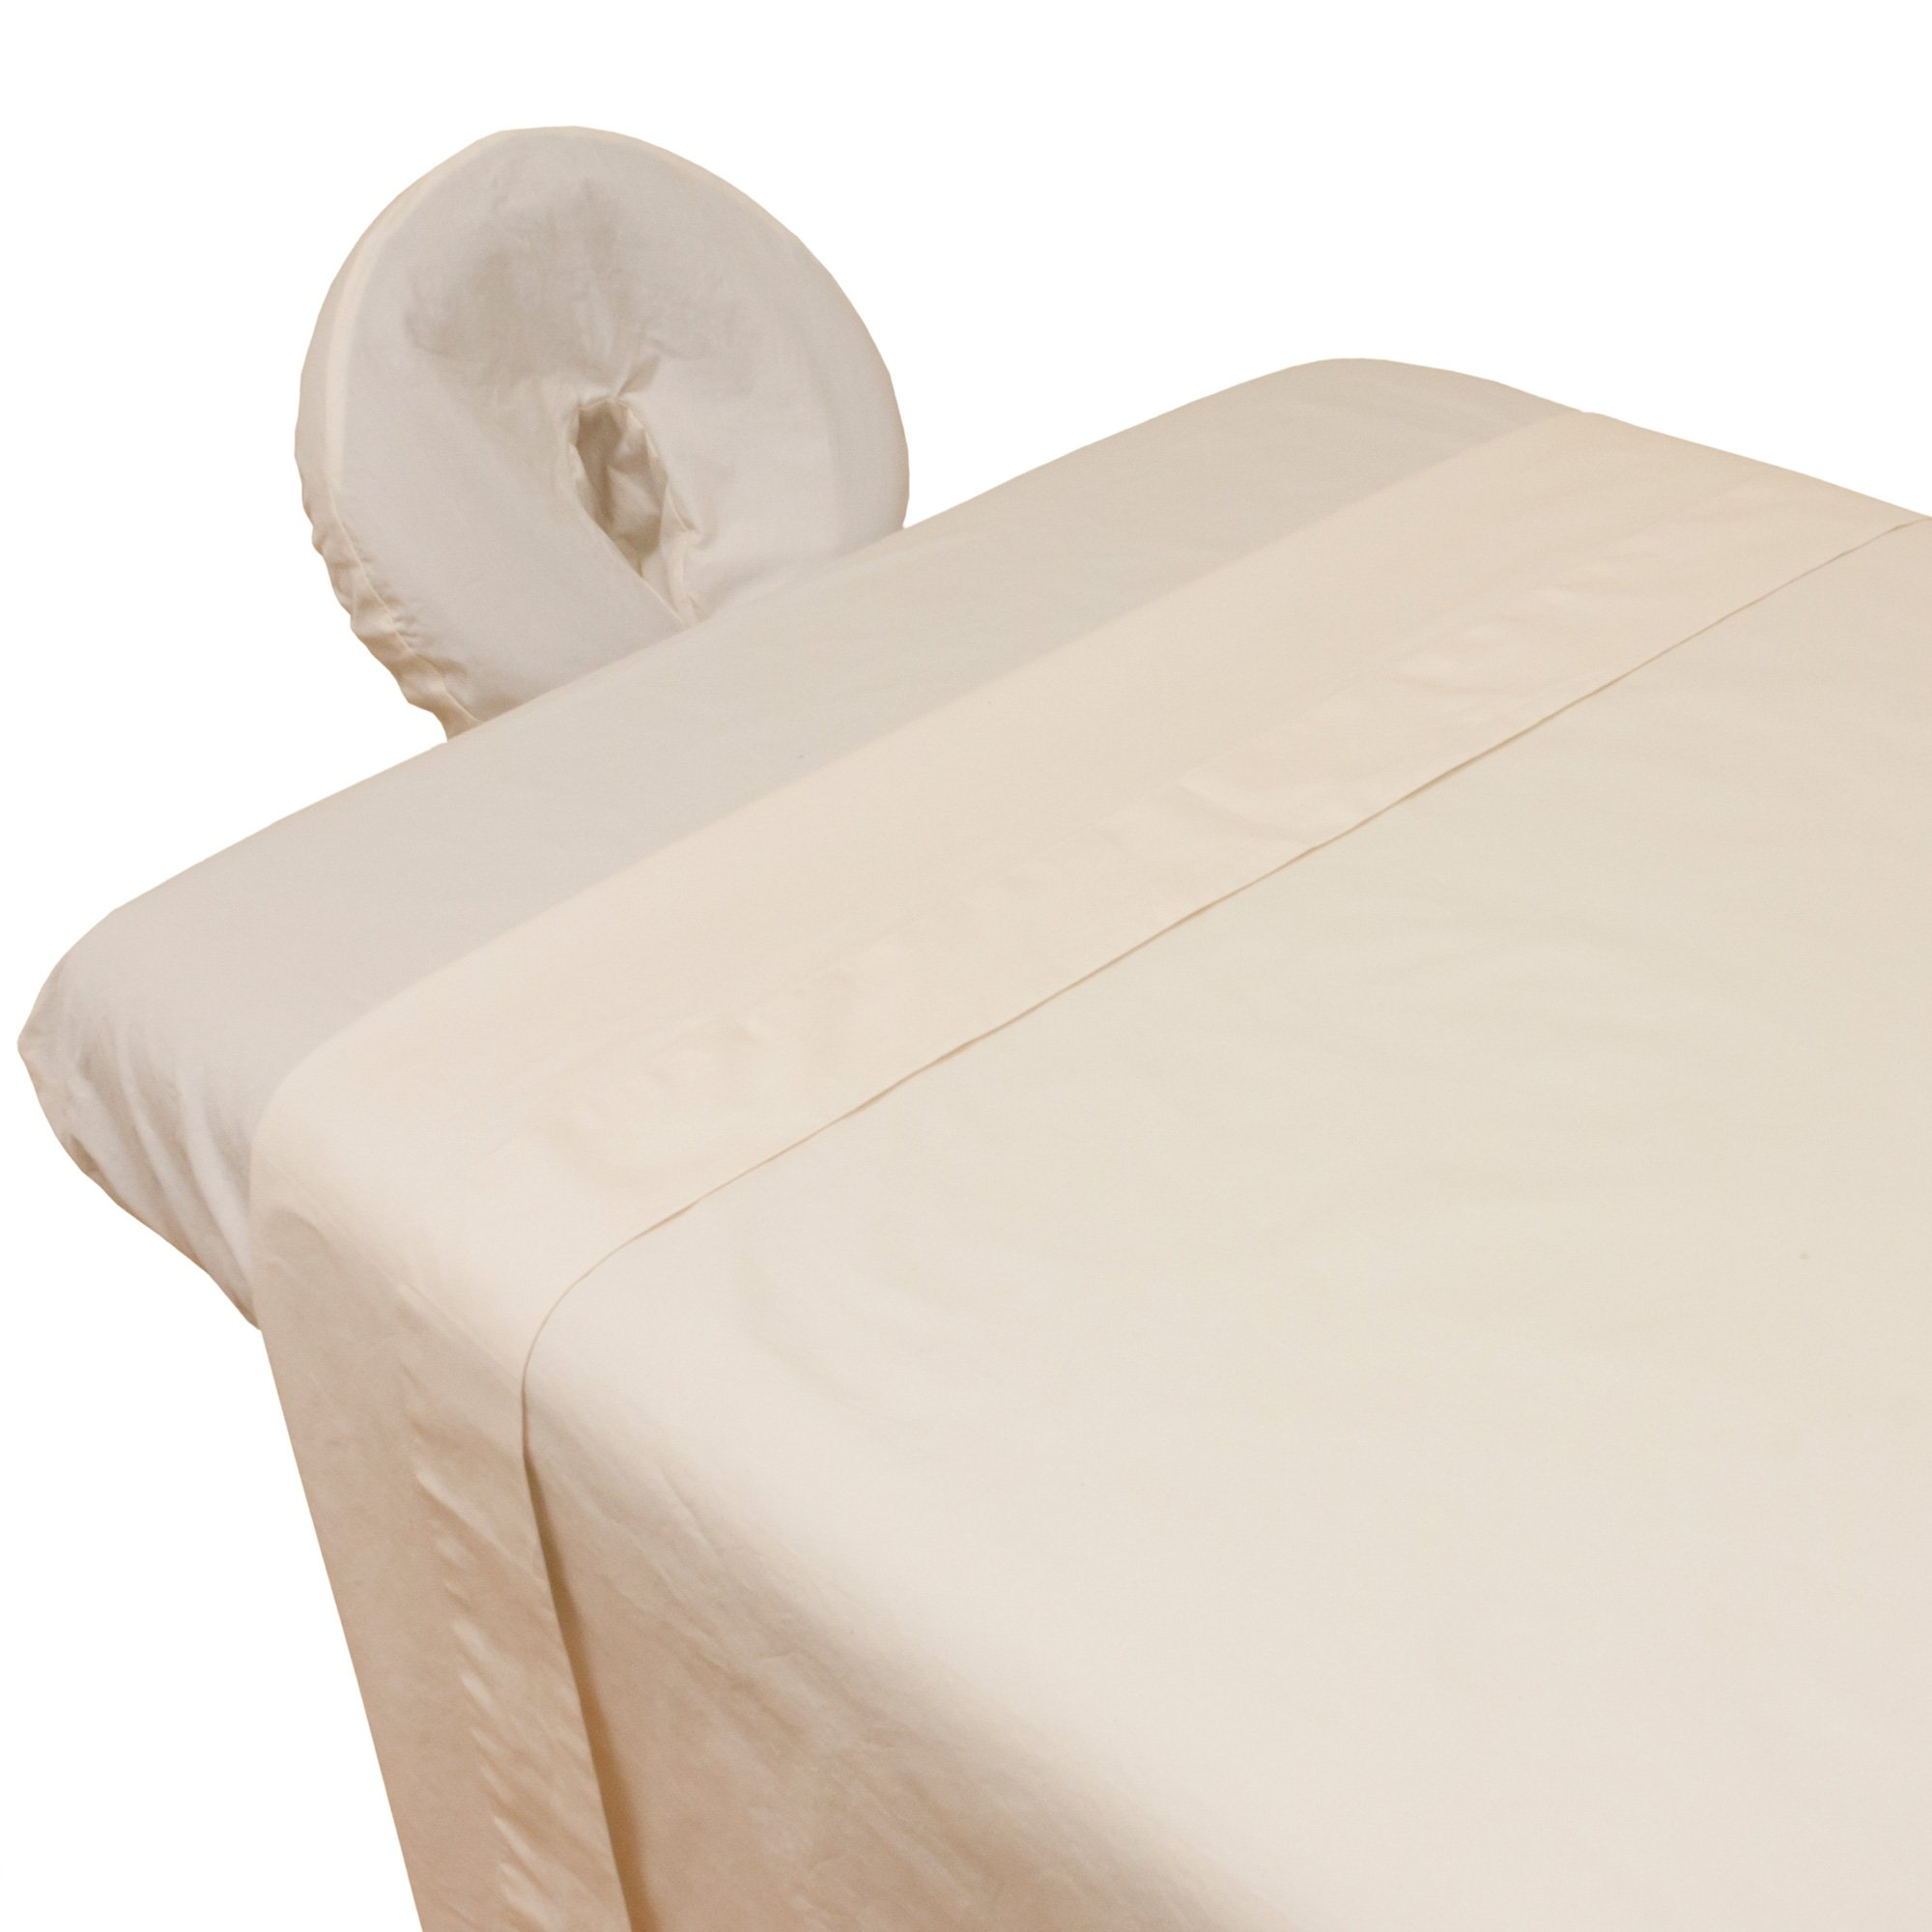 Arcadia© Organic Percale Massage Table Sheet Set by Body Linen